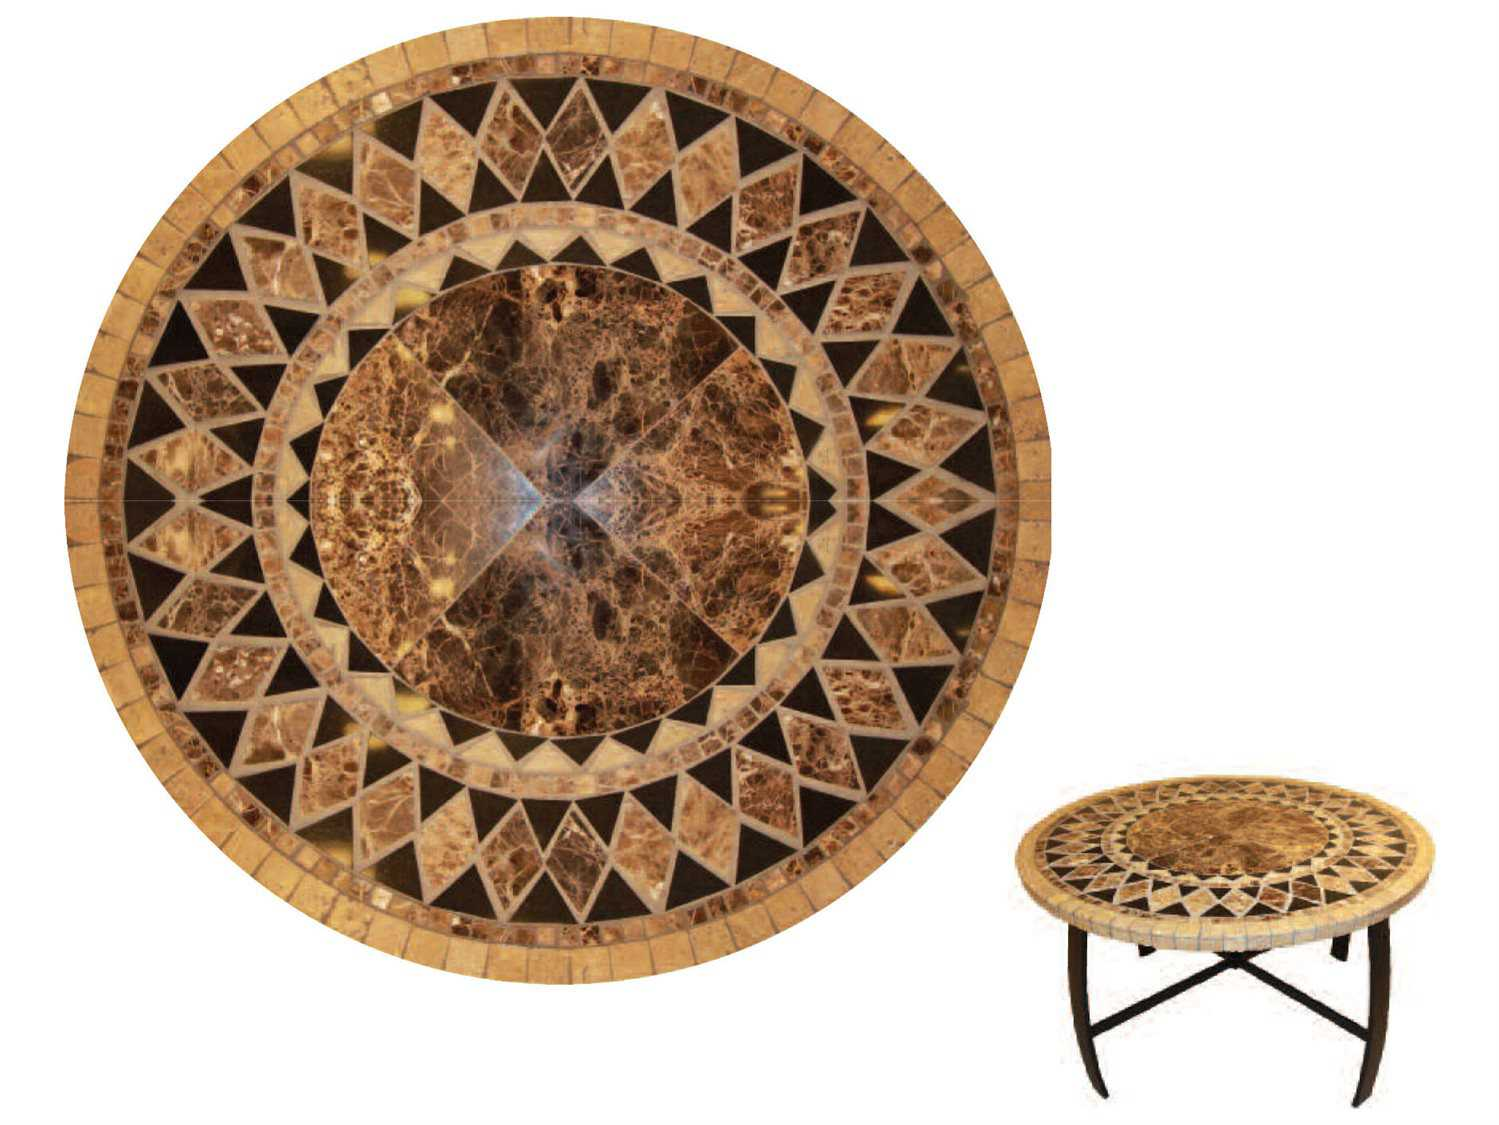 Suncoast Onyx Natural Stone 24 Round Side Table